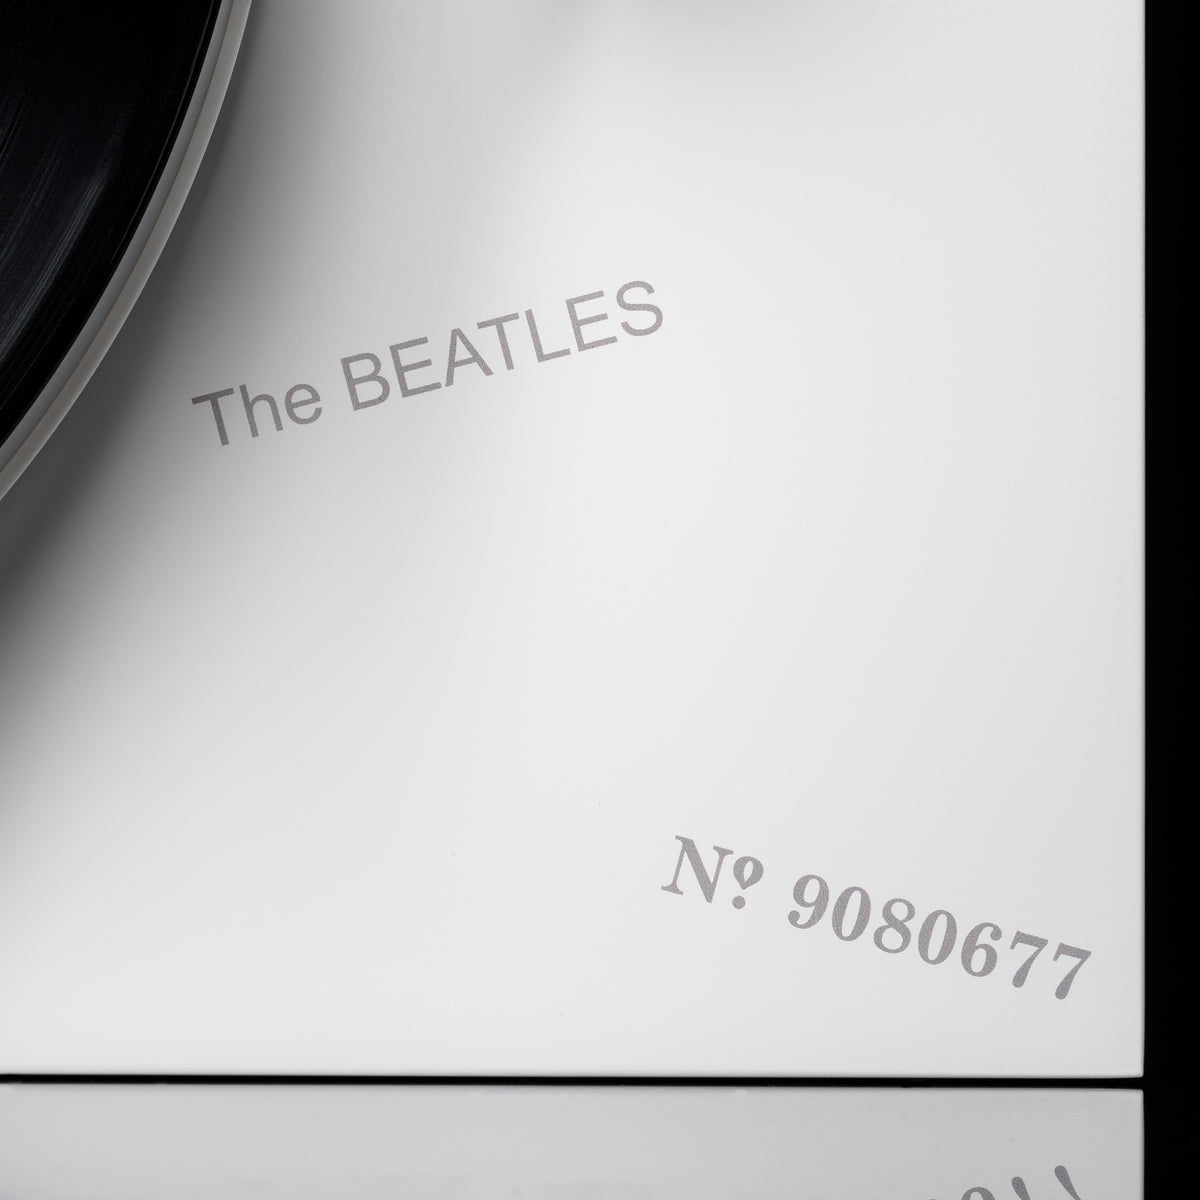 Pro-Ject: 2Xperience SB Turntable - The Beatles White Album Edition